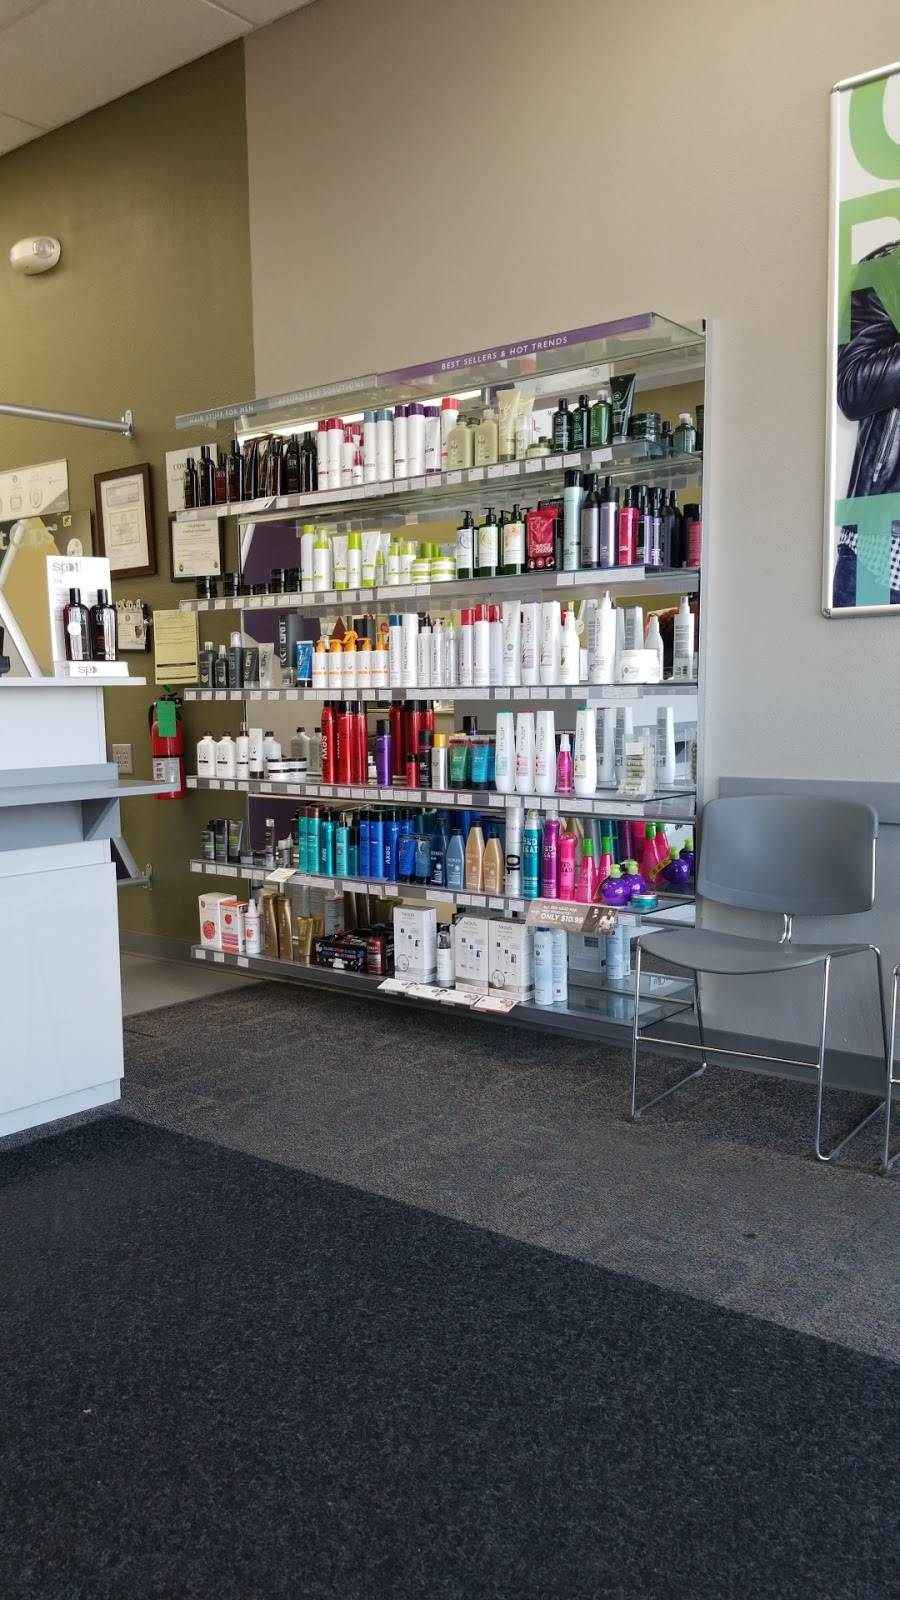 Great Clips - hair care  | Photo 6 of 8 | Address: 900 N Blue Mound Rd Ste 164, Saginaw, TX 76131, USA | Phone: (817) 847-7570